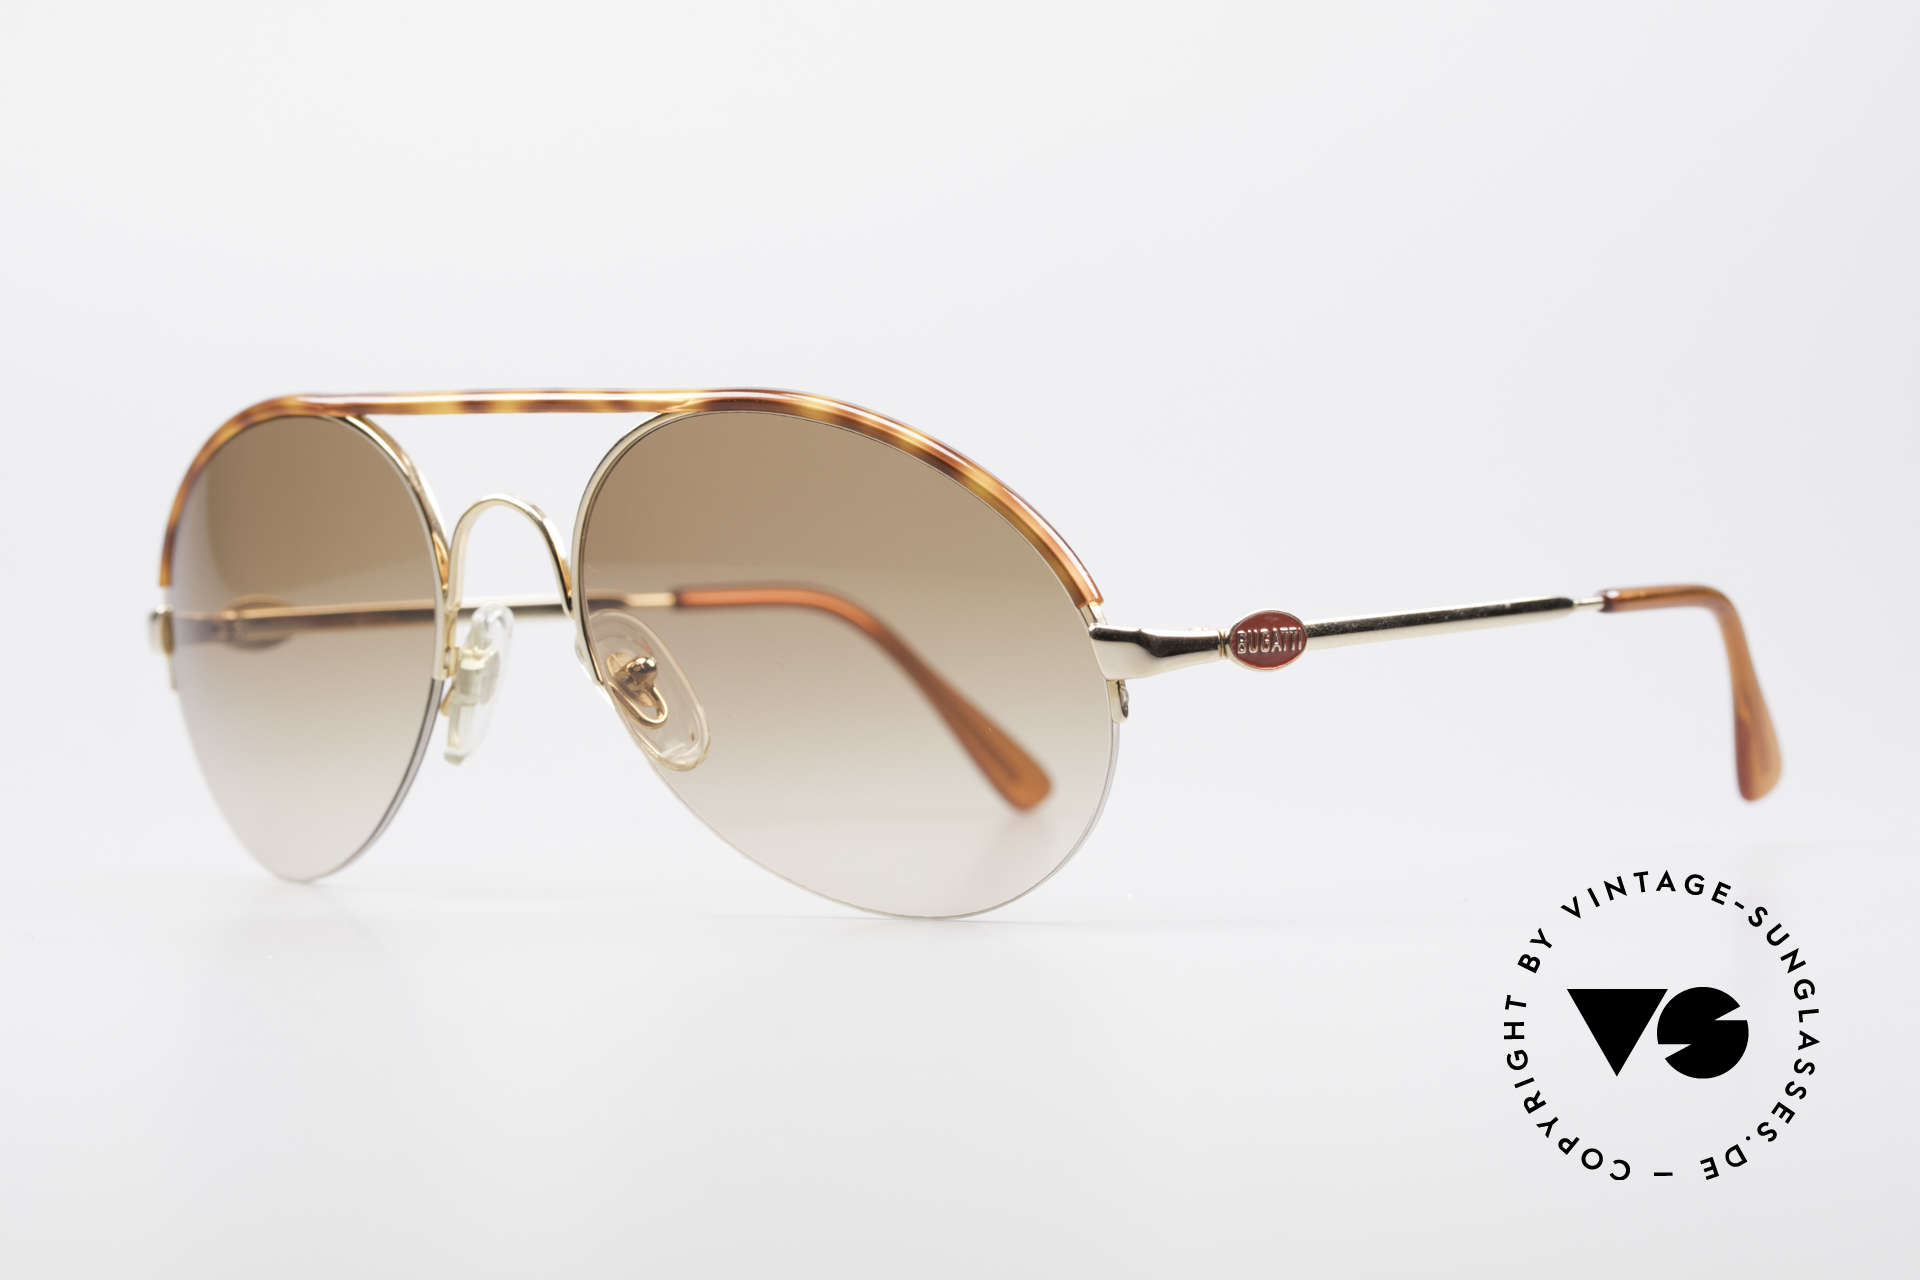 Bugatti 64919 90's Semi Rimless Sunglasses, gold-plated with tortoise appliqué and red B-logos, Made for Men